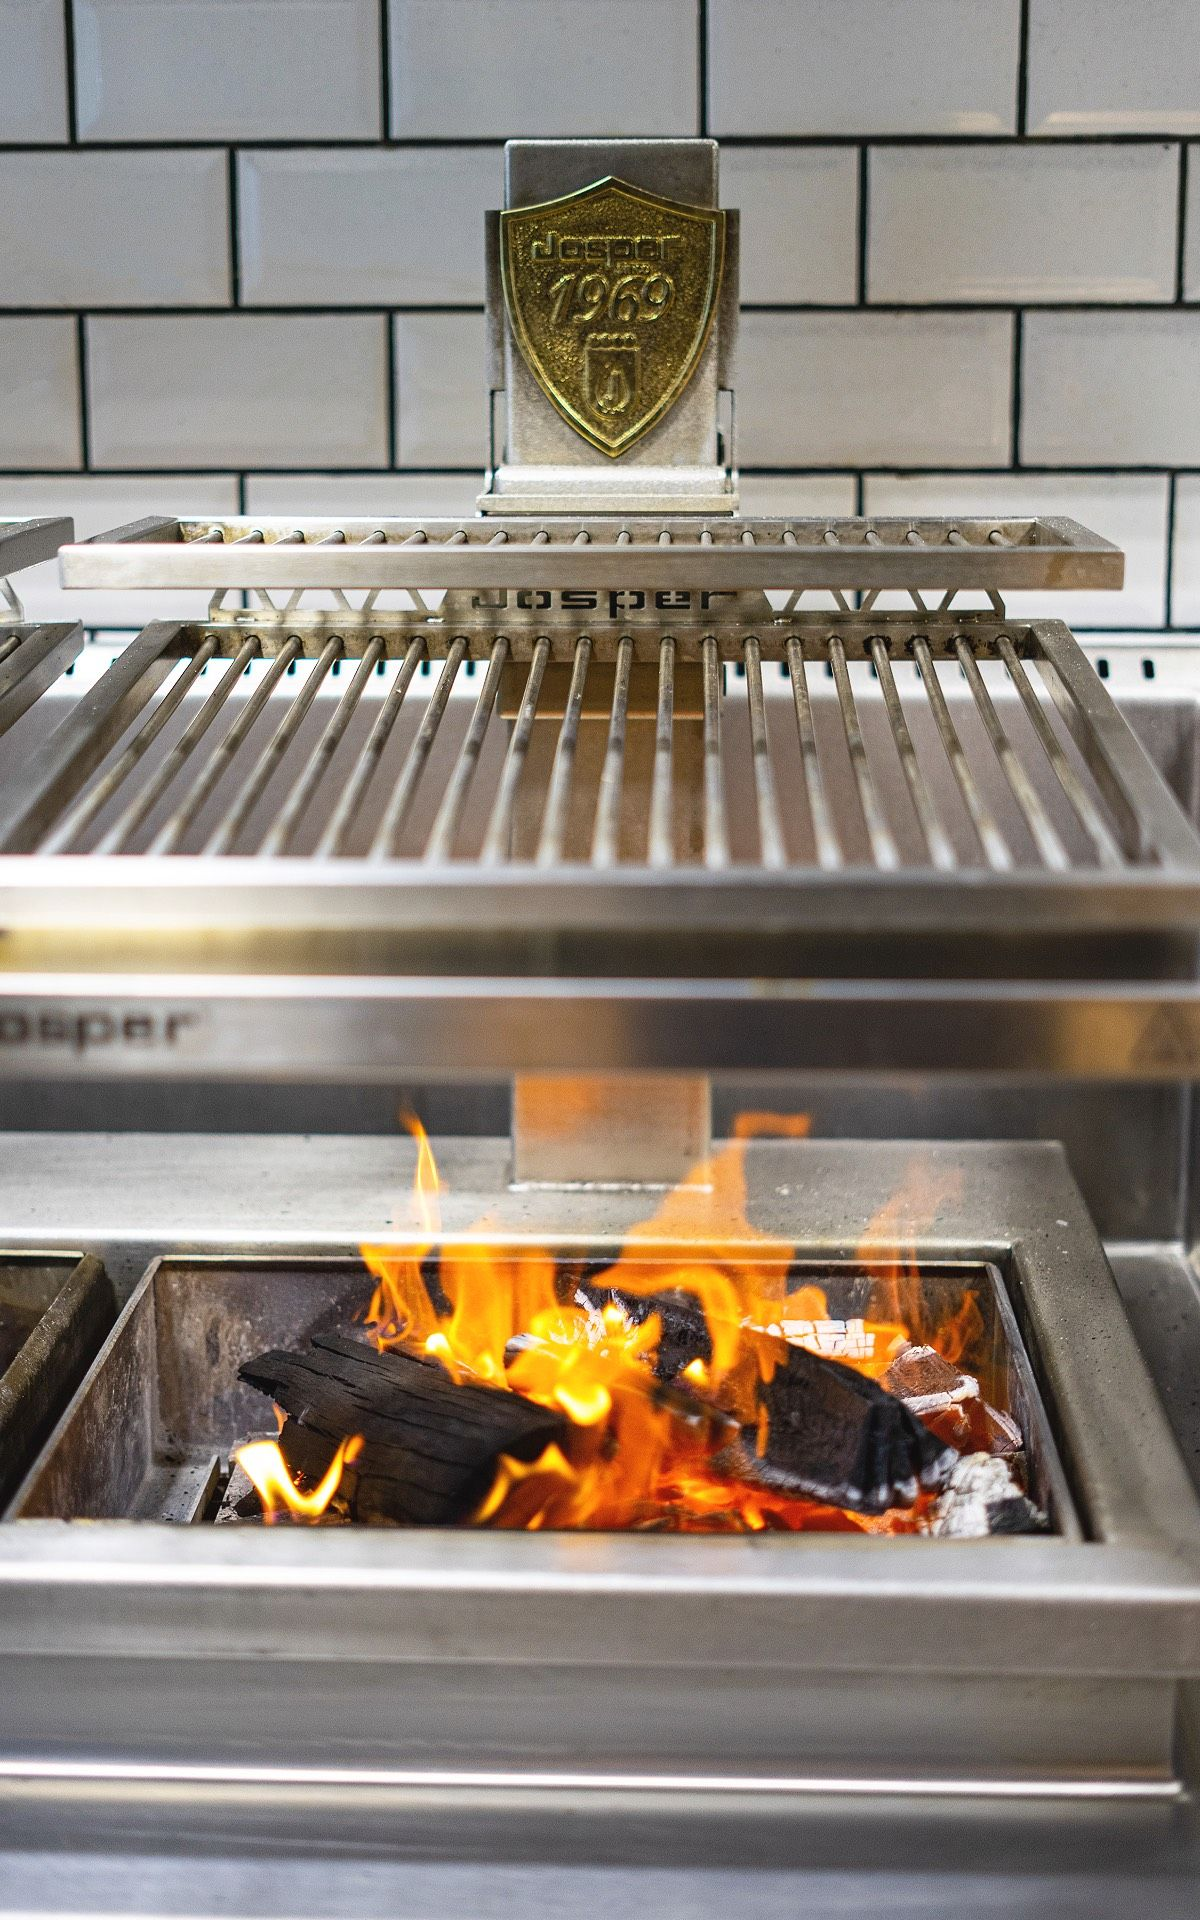 Invented in Barcelona in 1969, the Josper oven is every chef's dream toy (Photo: Park Grill)